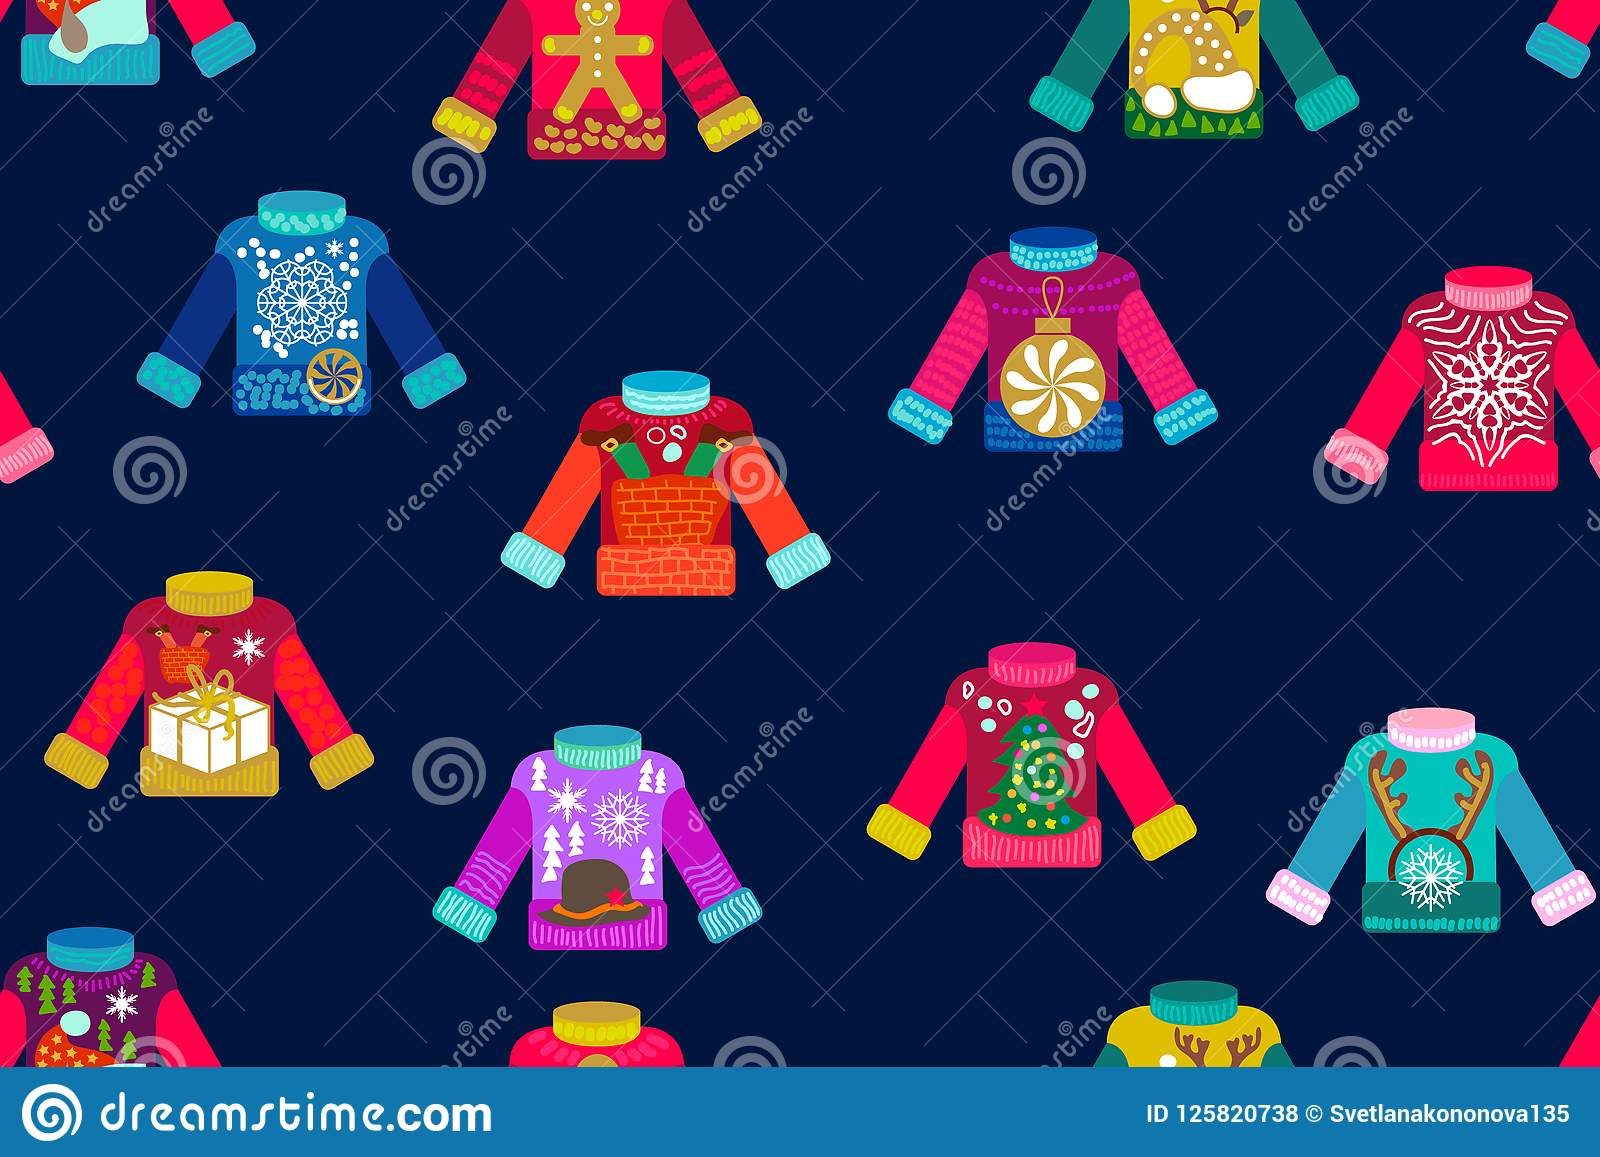 Ugly Christmas sweaters. stock vector. Illustration of handmade ...